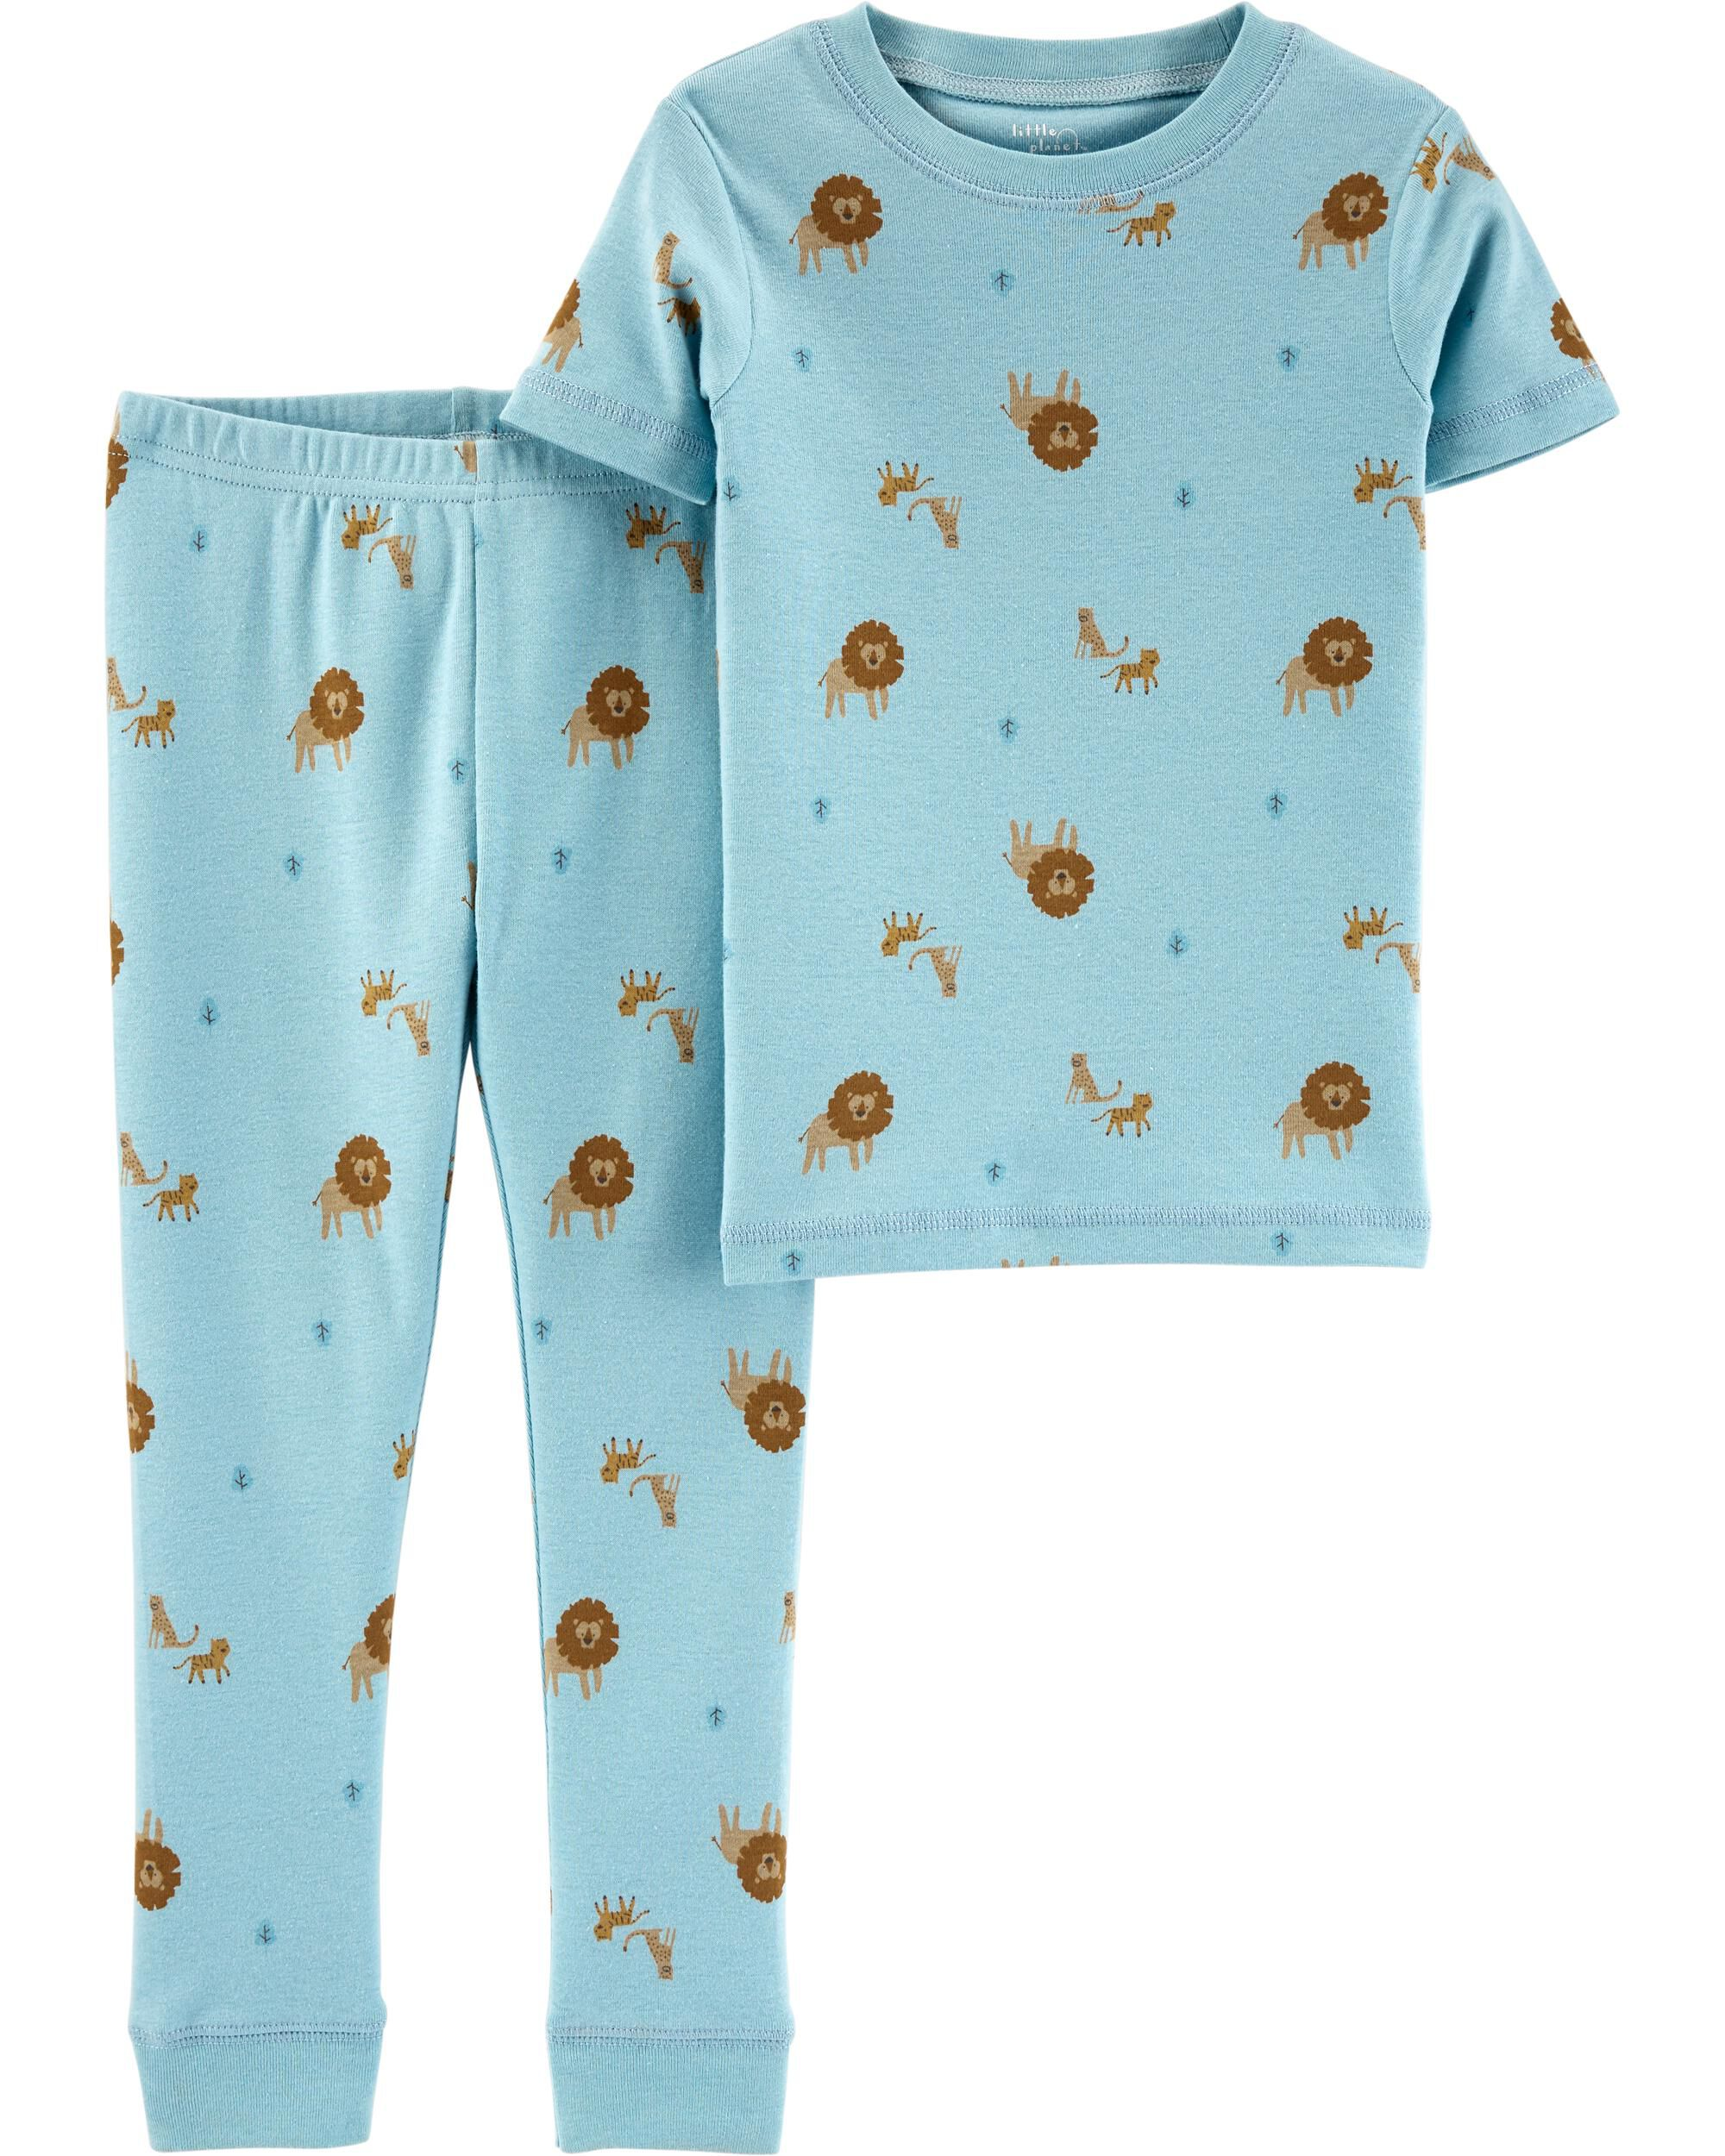 OshKosh BGosh 3-Piece Snug Fit Cotton PJs Cars 9M Black//Orange